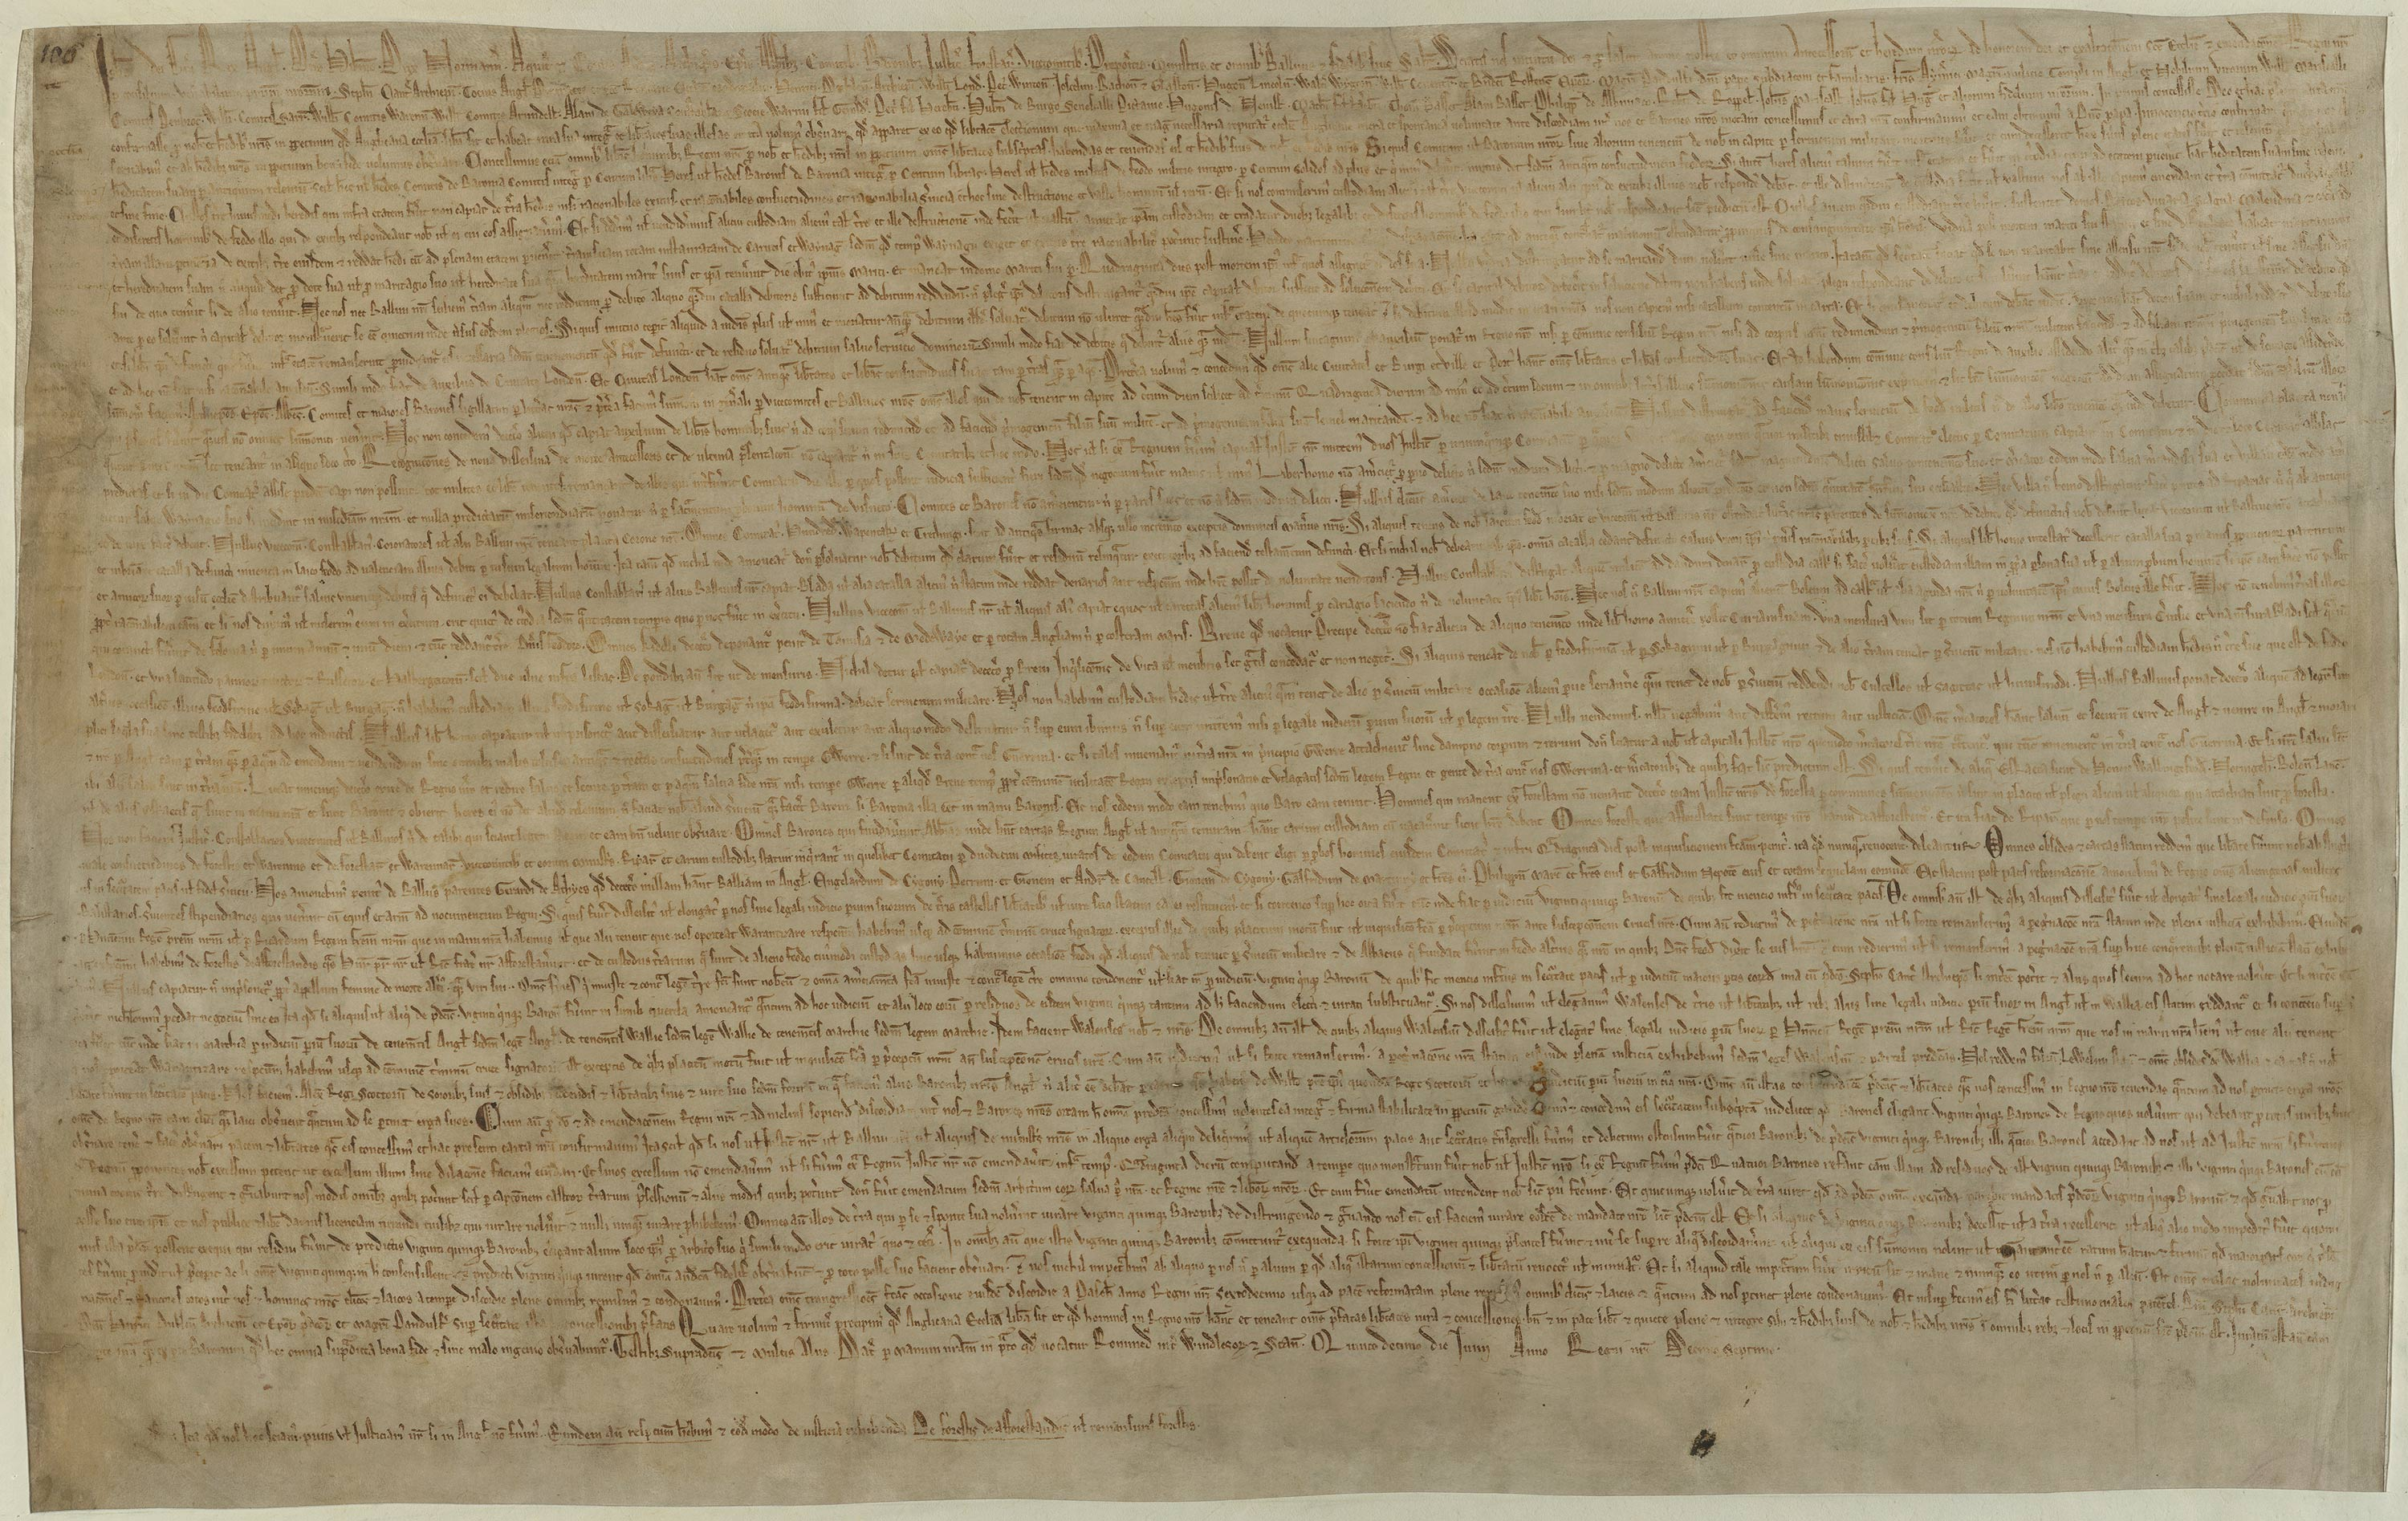 Original 1215 edition of Magna Carta, Cotton Augustus ii.106